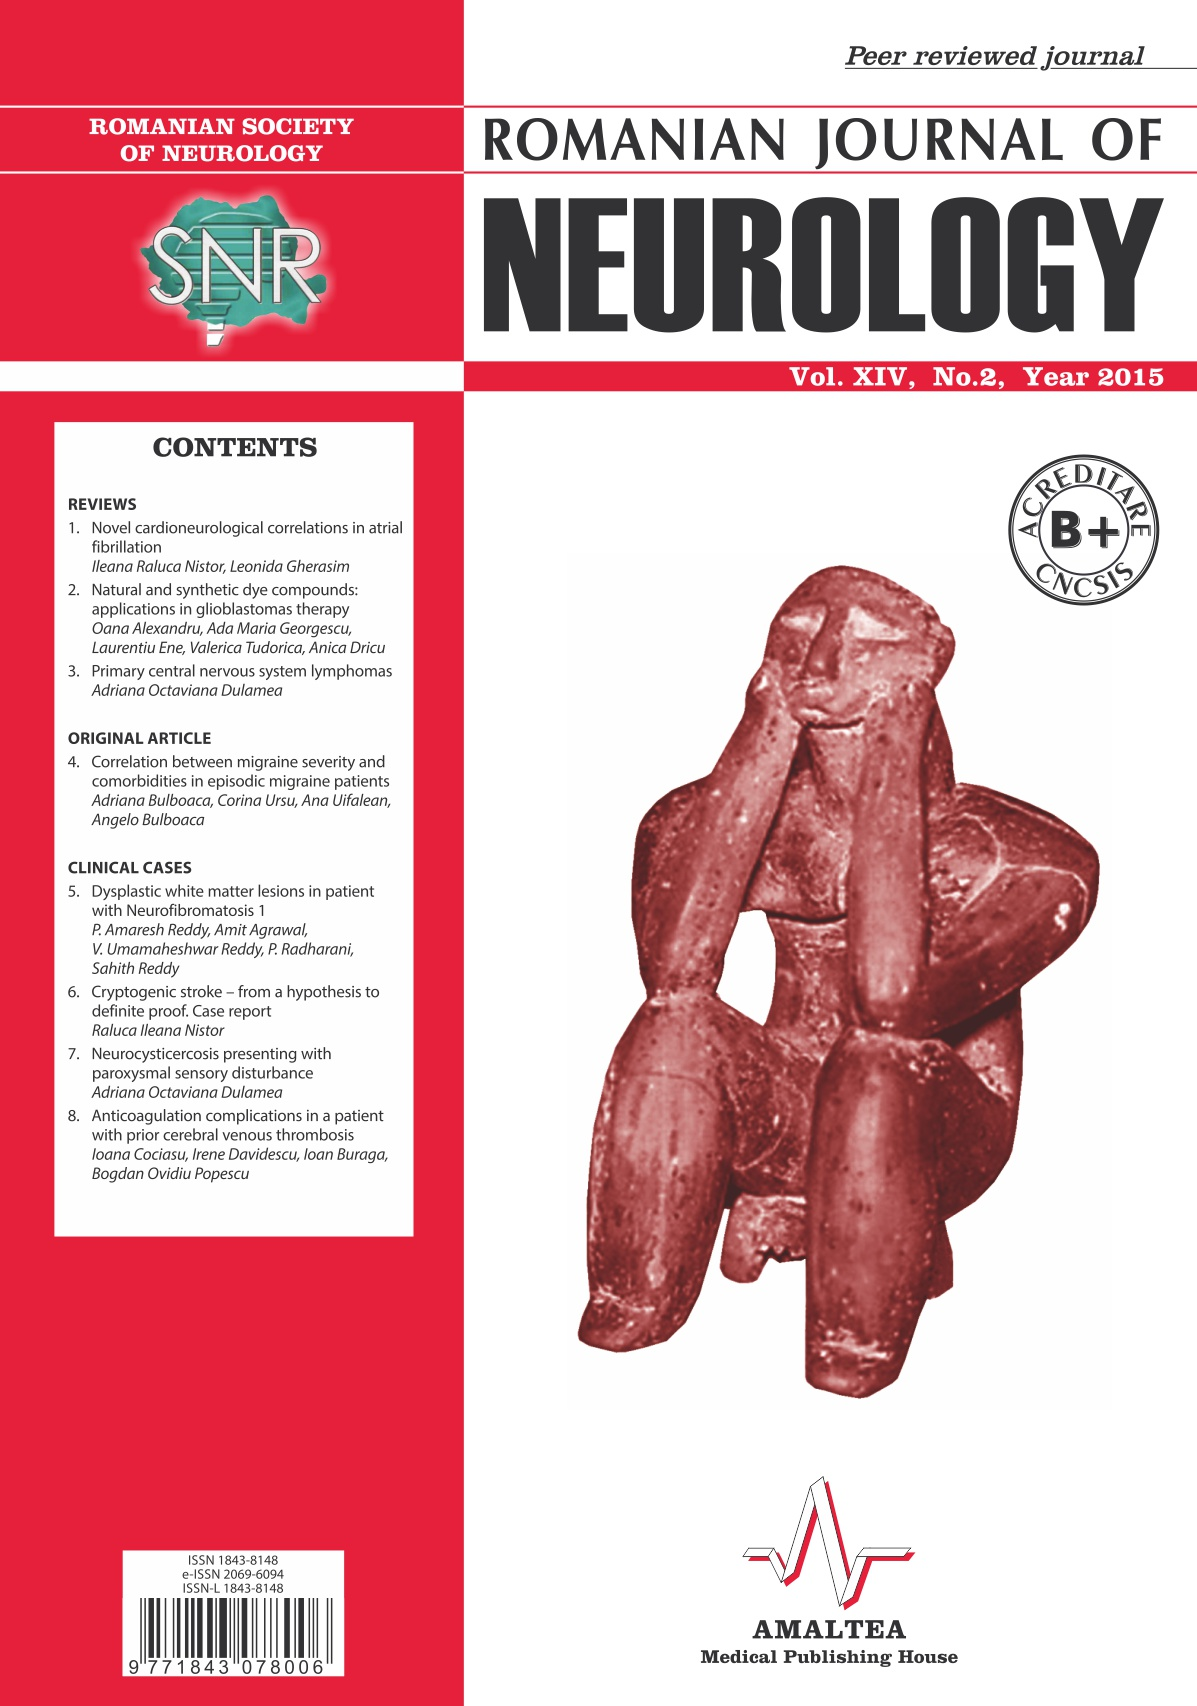 Romanian Journal of Neurology, Volume XIV, No. 2, 2015